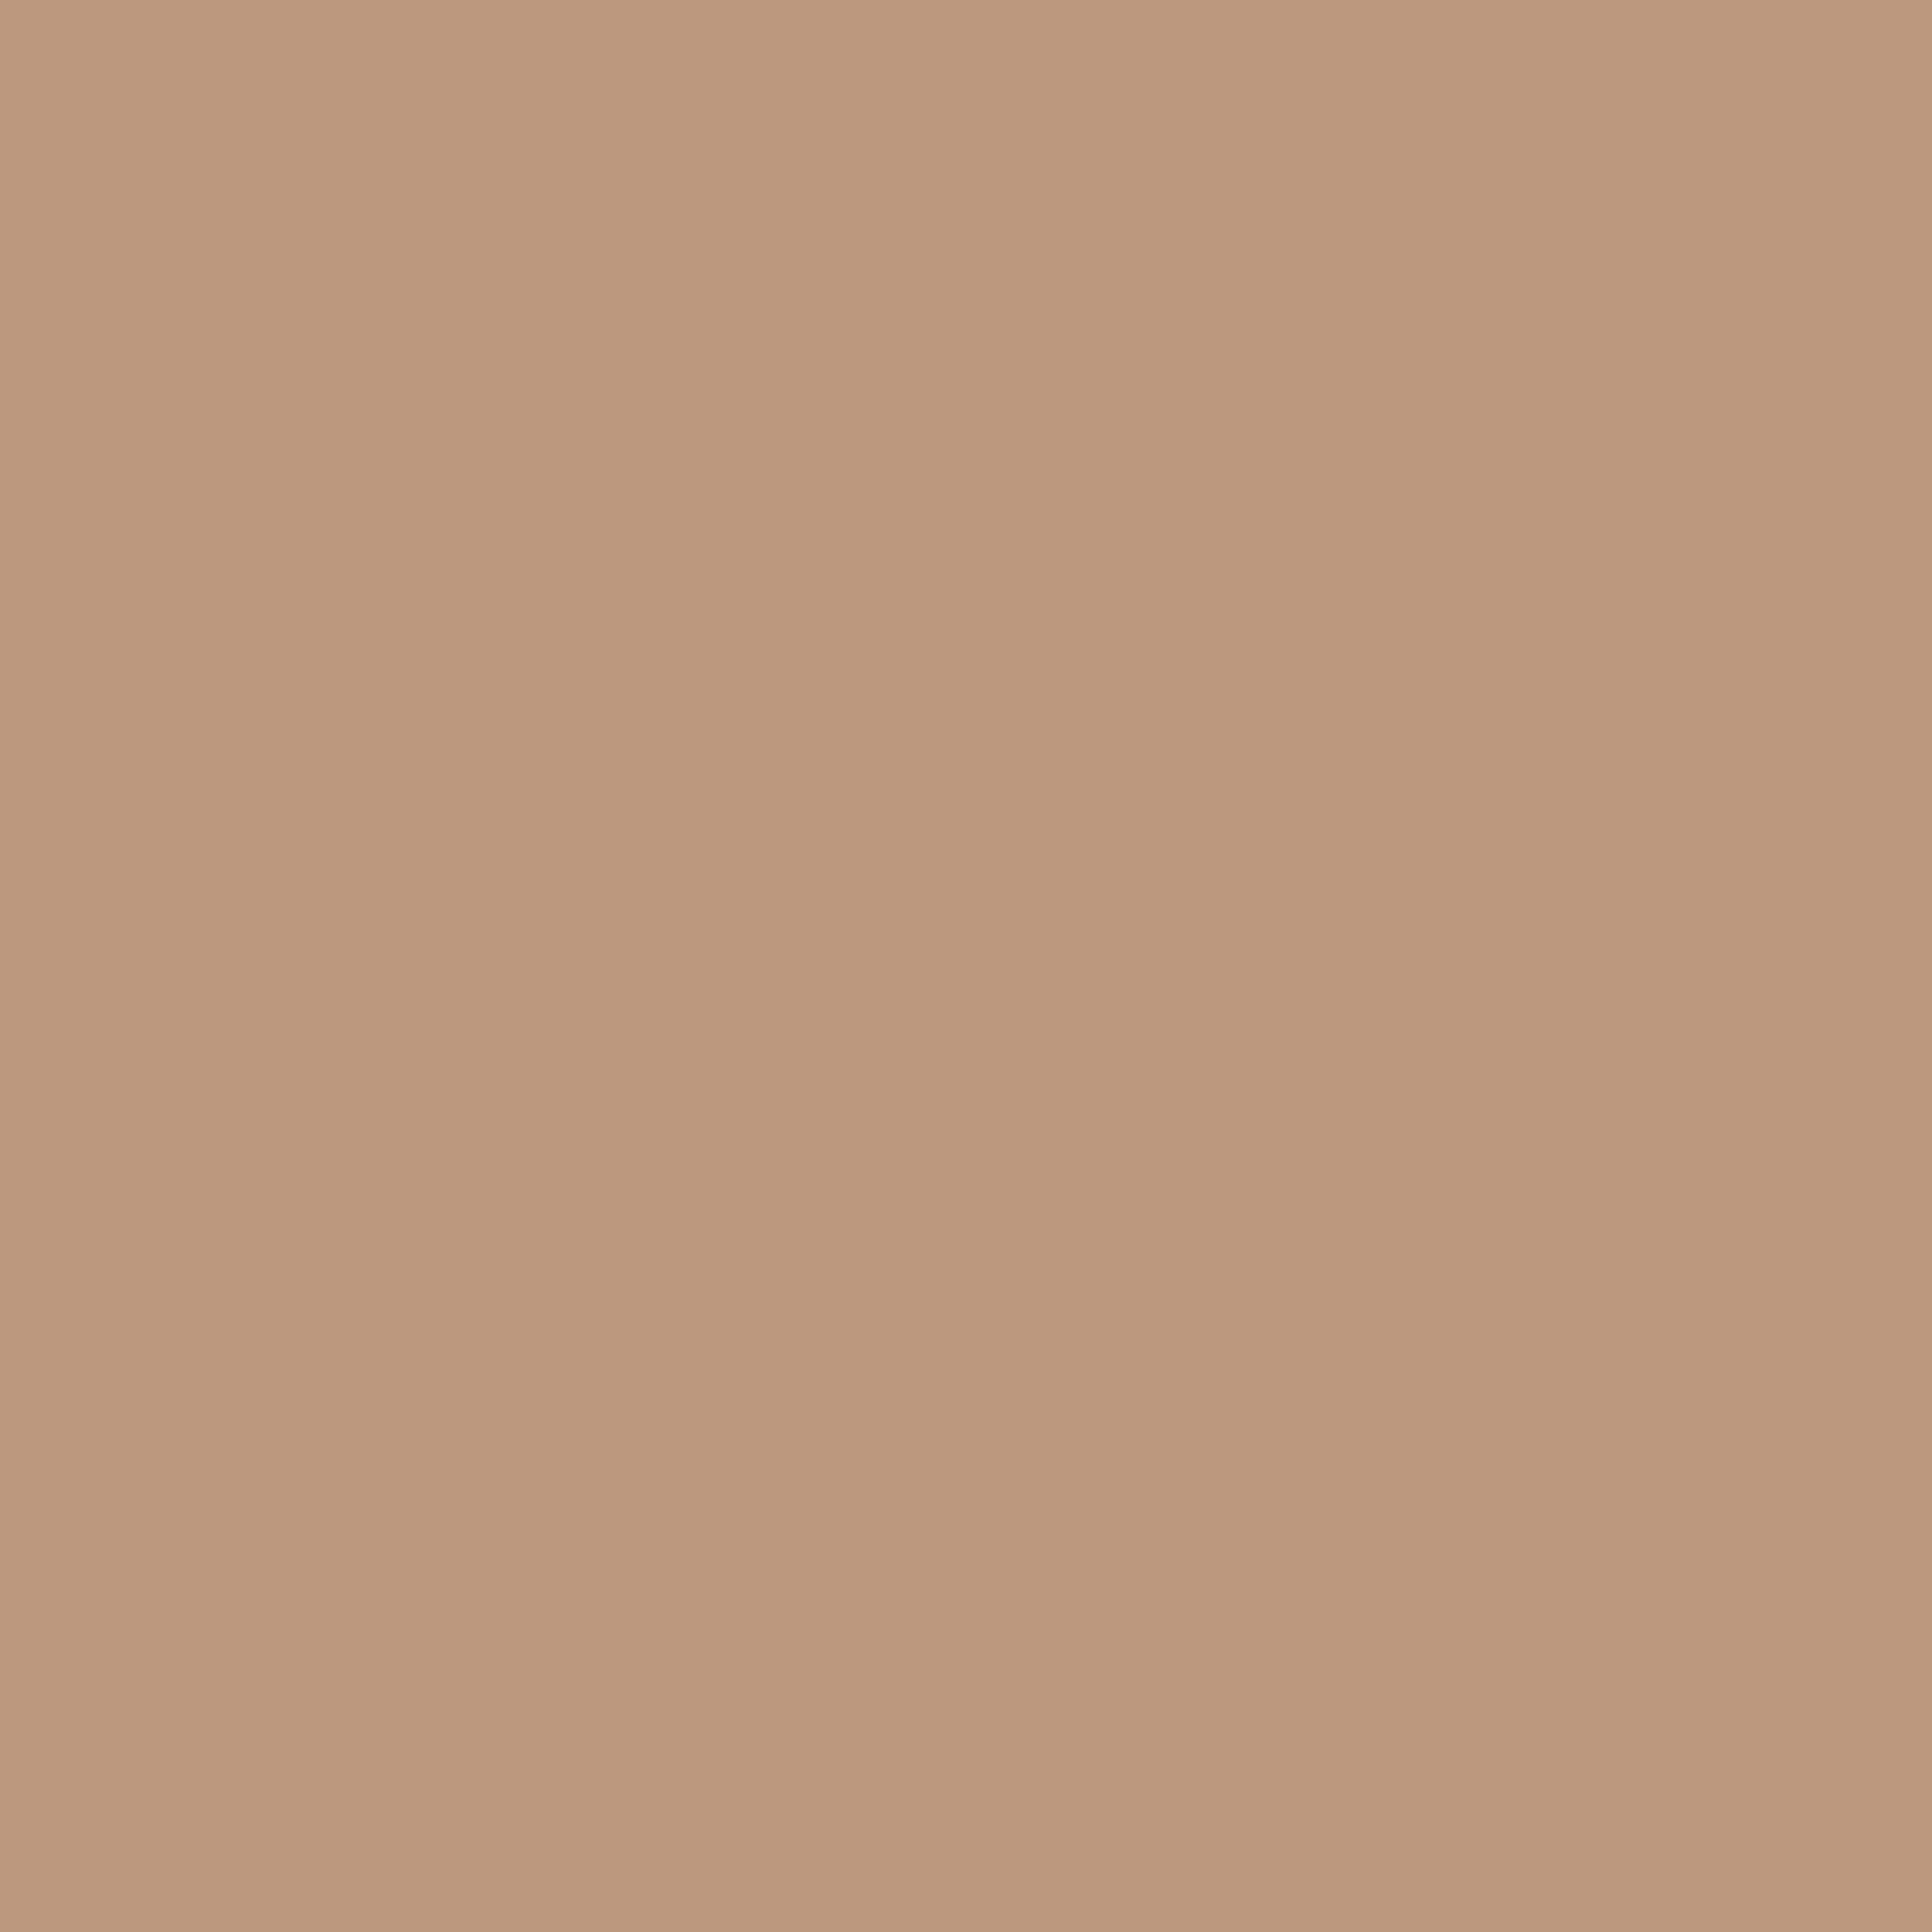 3600x3600 Pale Taupe Solid Color Background